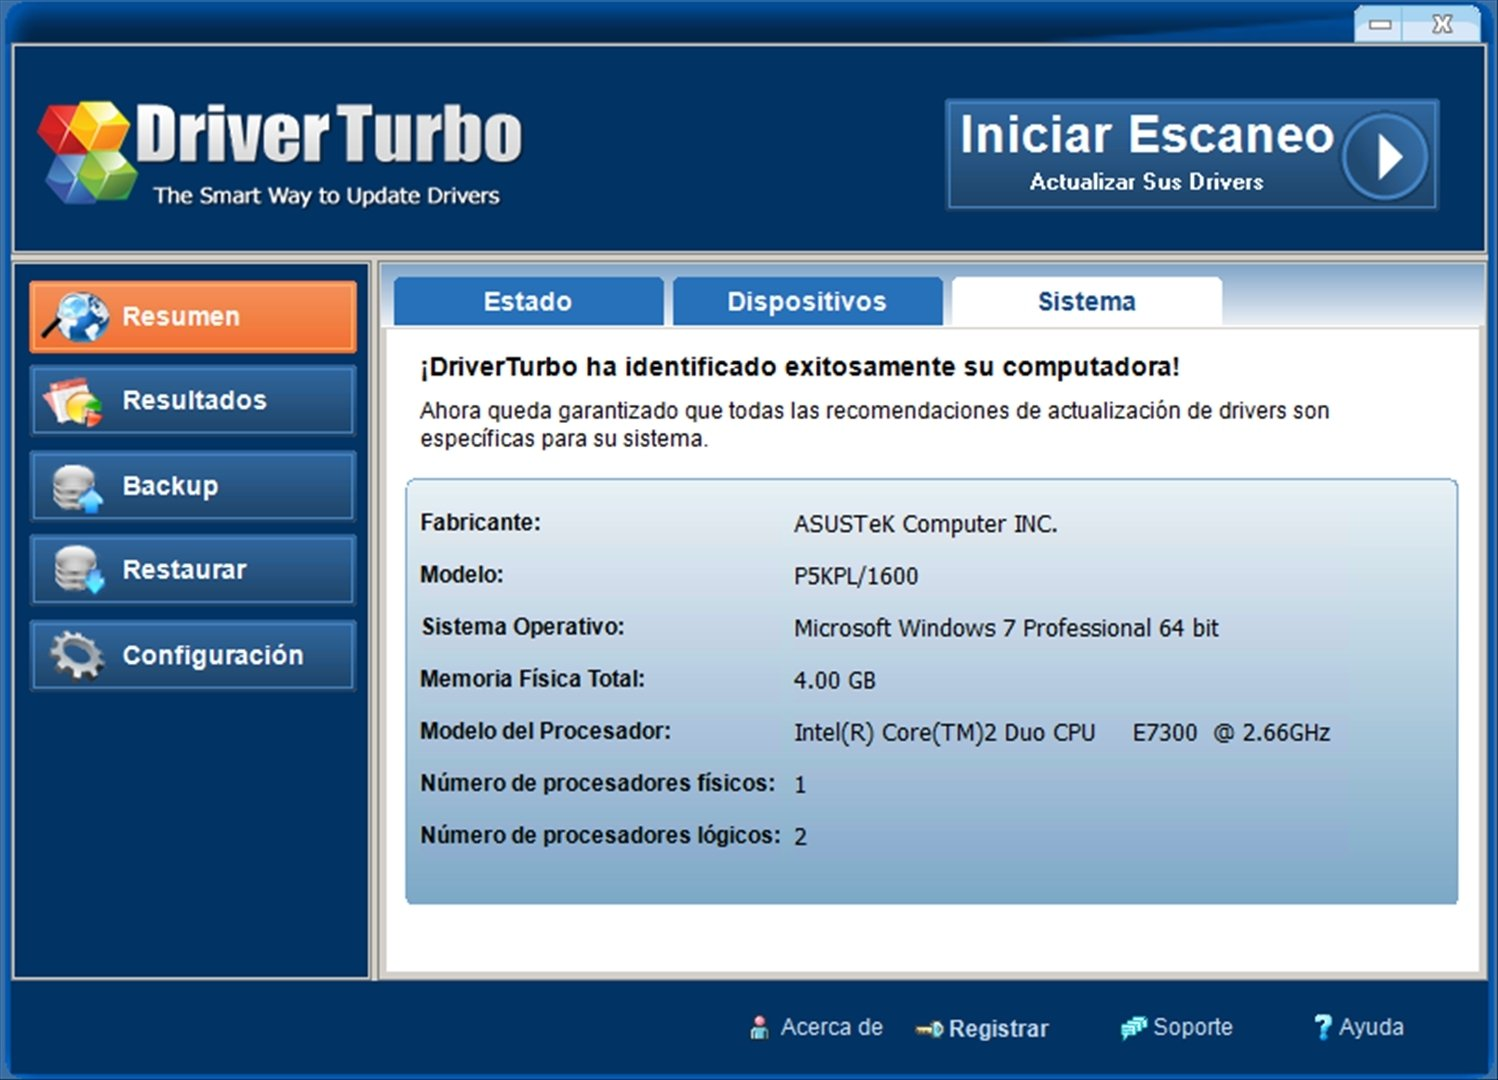 Driver Turbo image 6